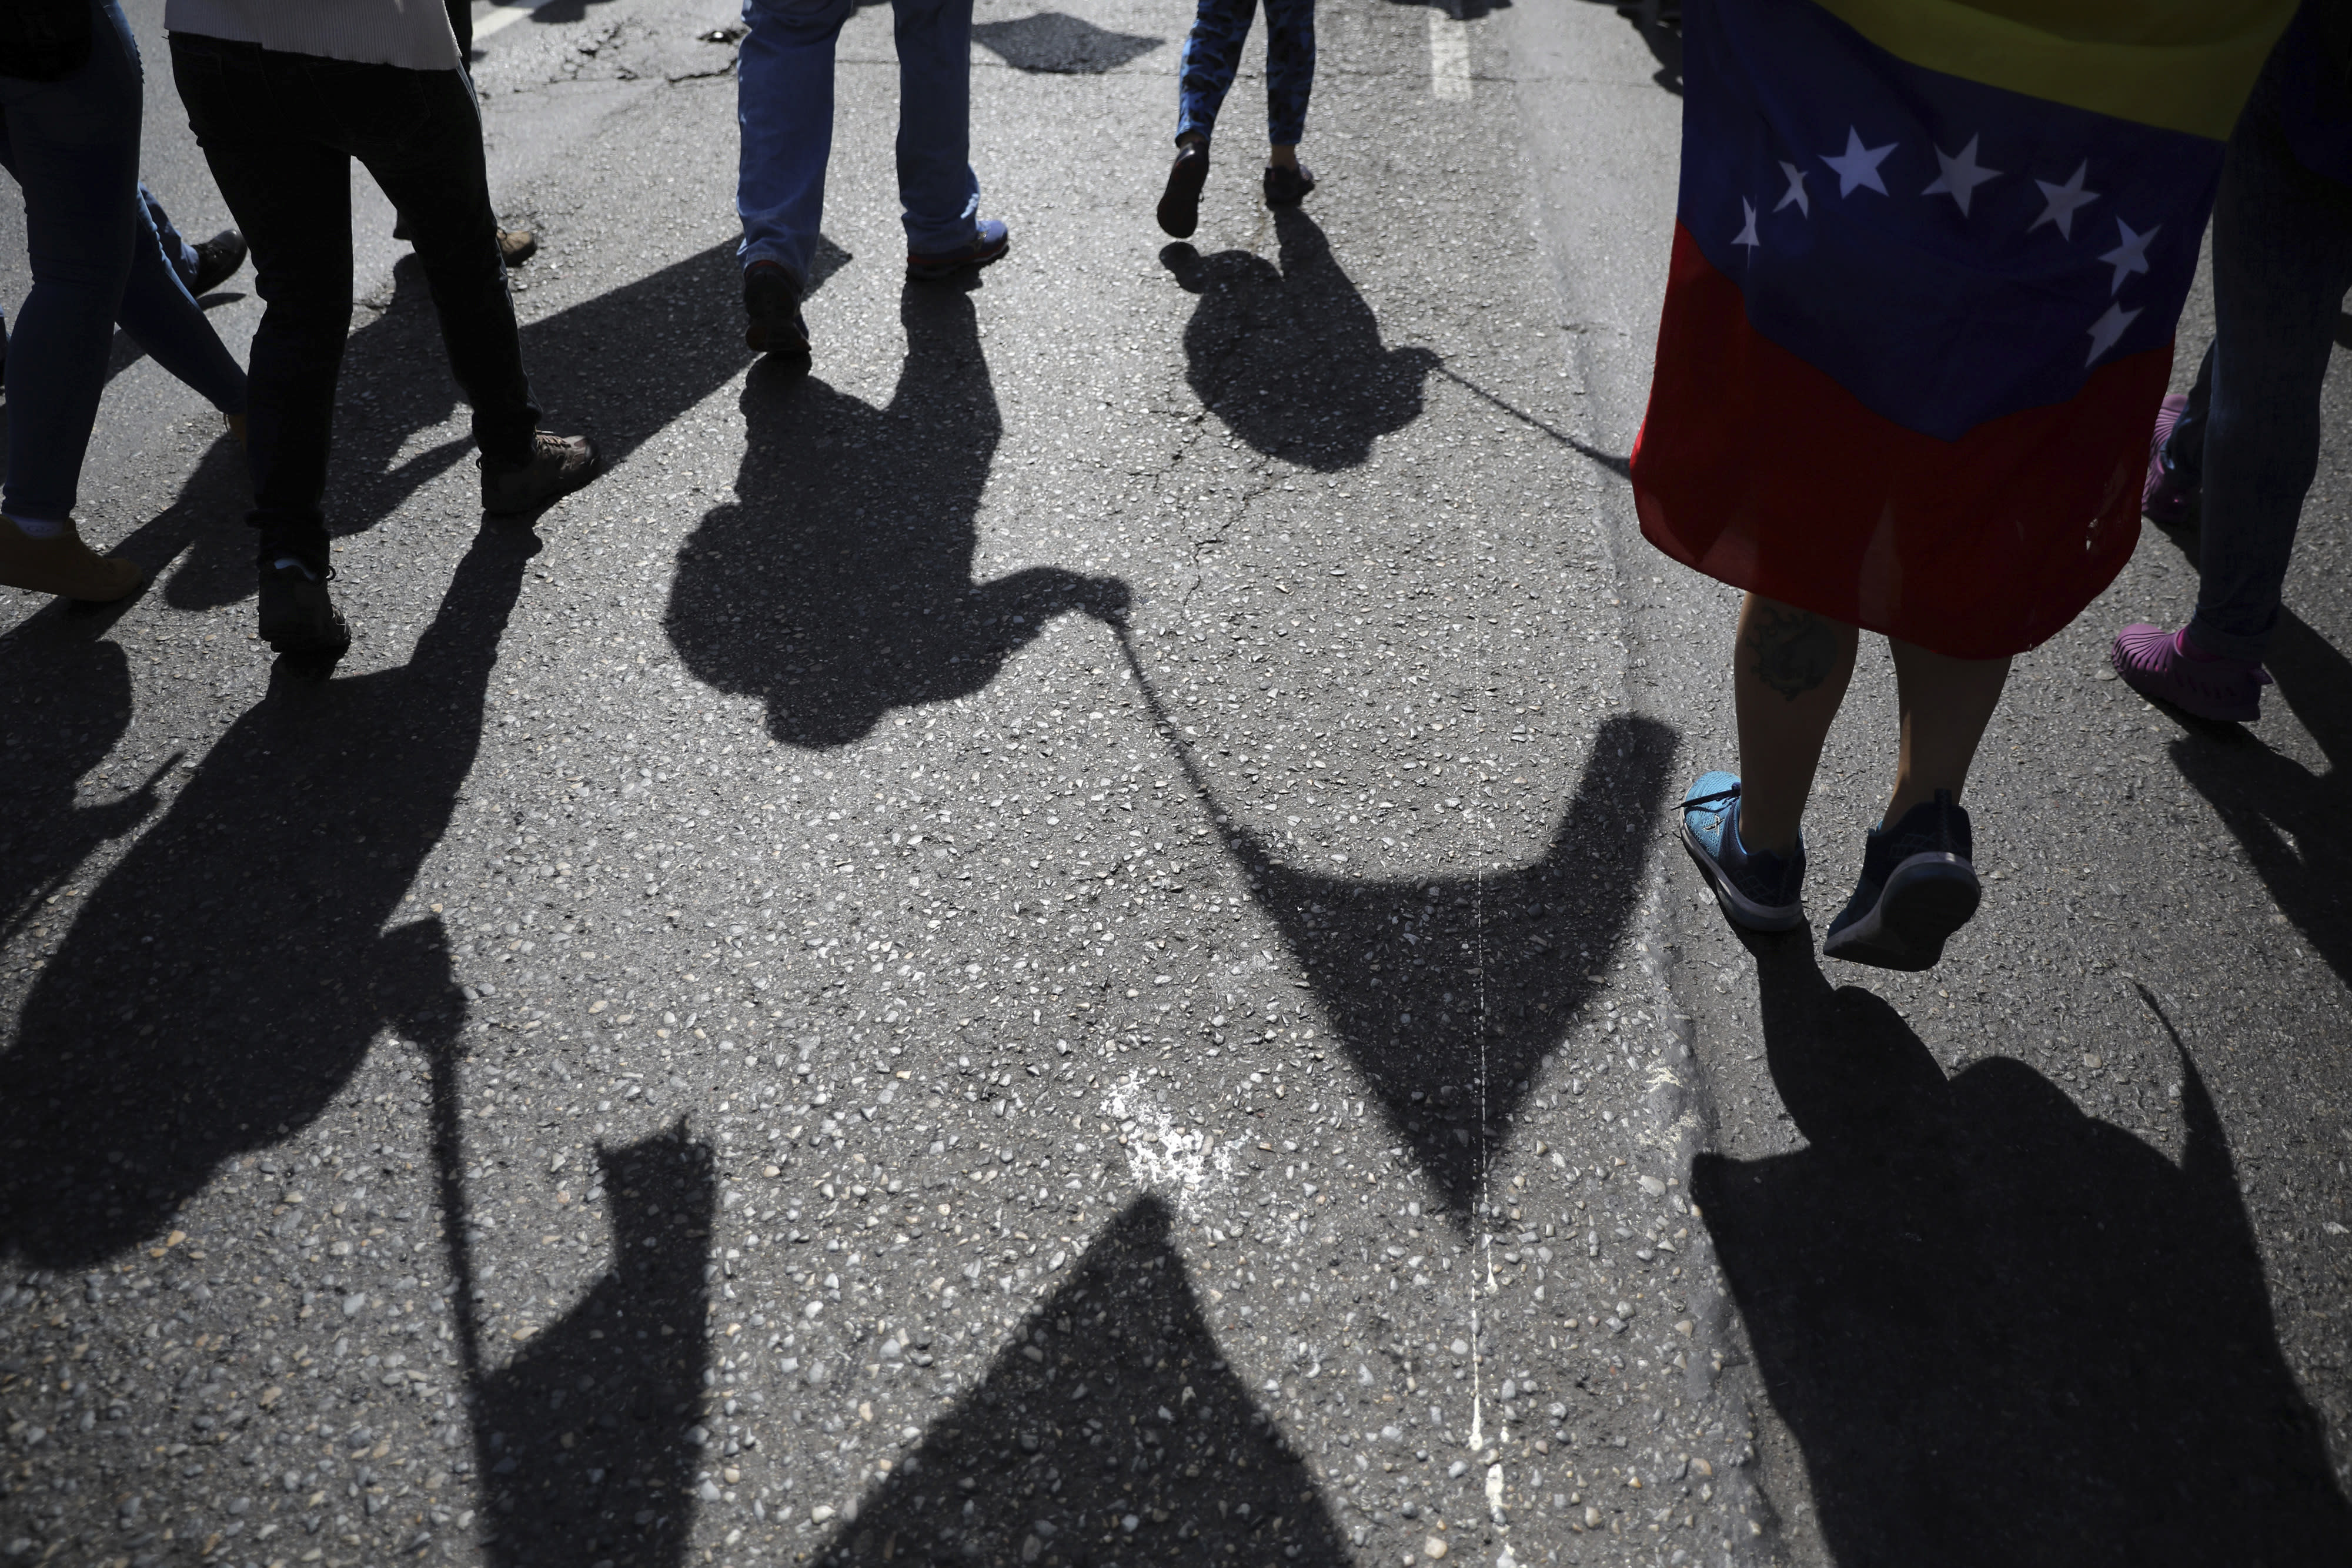 Anti-government protesters gather for the start of a nationwide demonstration demanding the resignation of President Nicolas Maduro, in Caracas, Venezuela, Saturday, Feb. 2, 2019. Momentum is growing for Venezuela's opposition movement led by lawmaker Juan Guaido, who has called supporters back into the streets for nationwide protests Saturday, escalating pressure on embattled Maduro to step down. (AP Photo/Rodrigo Abd)